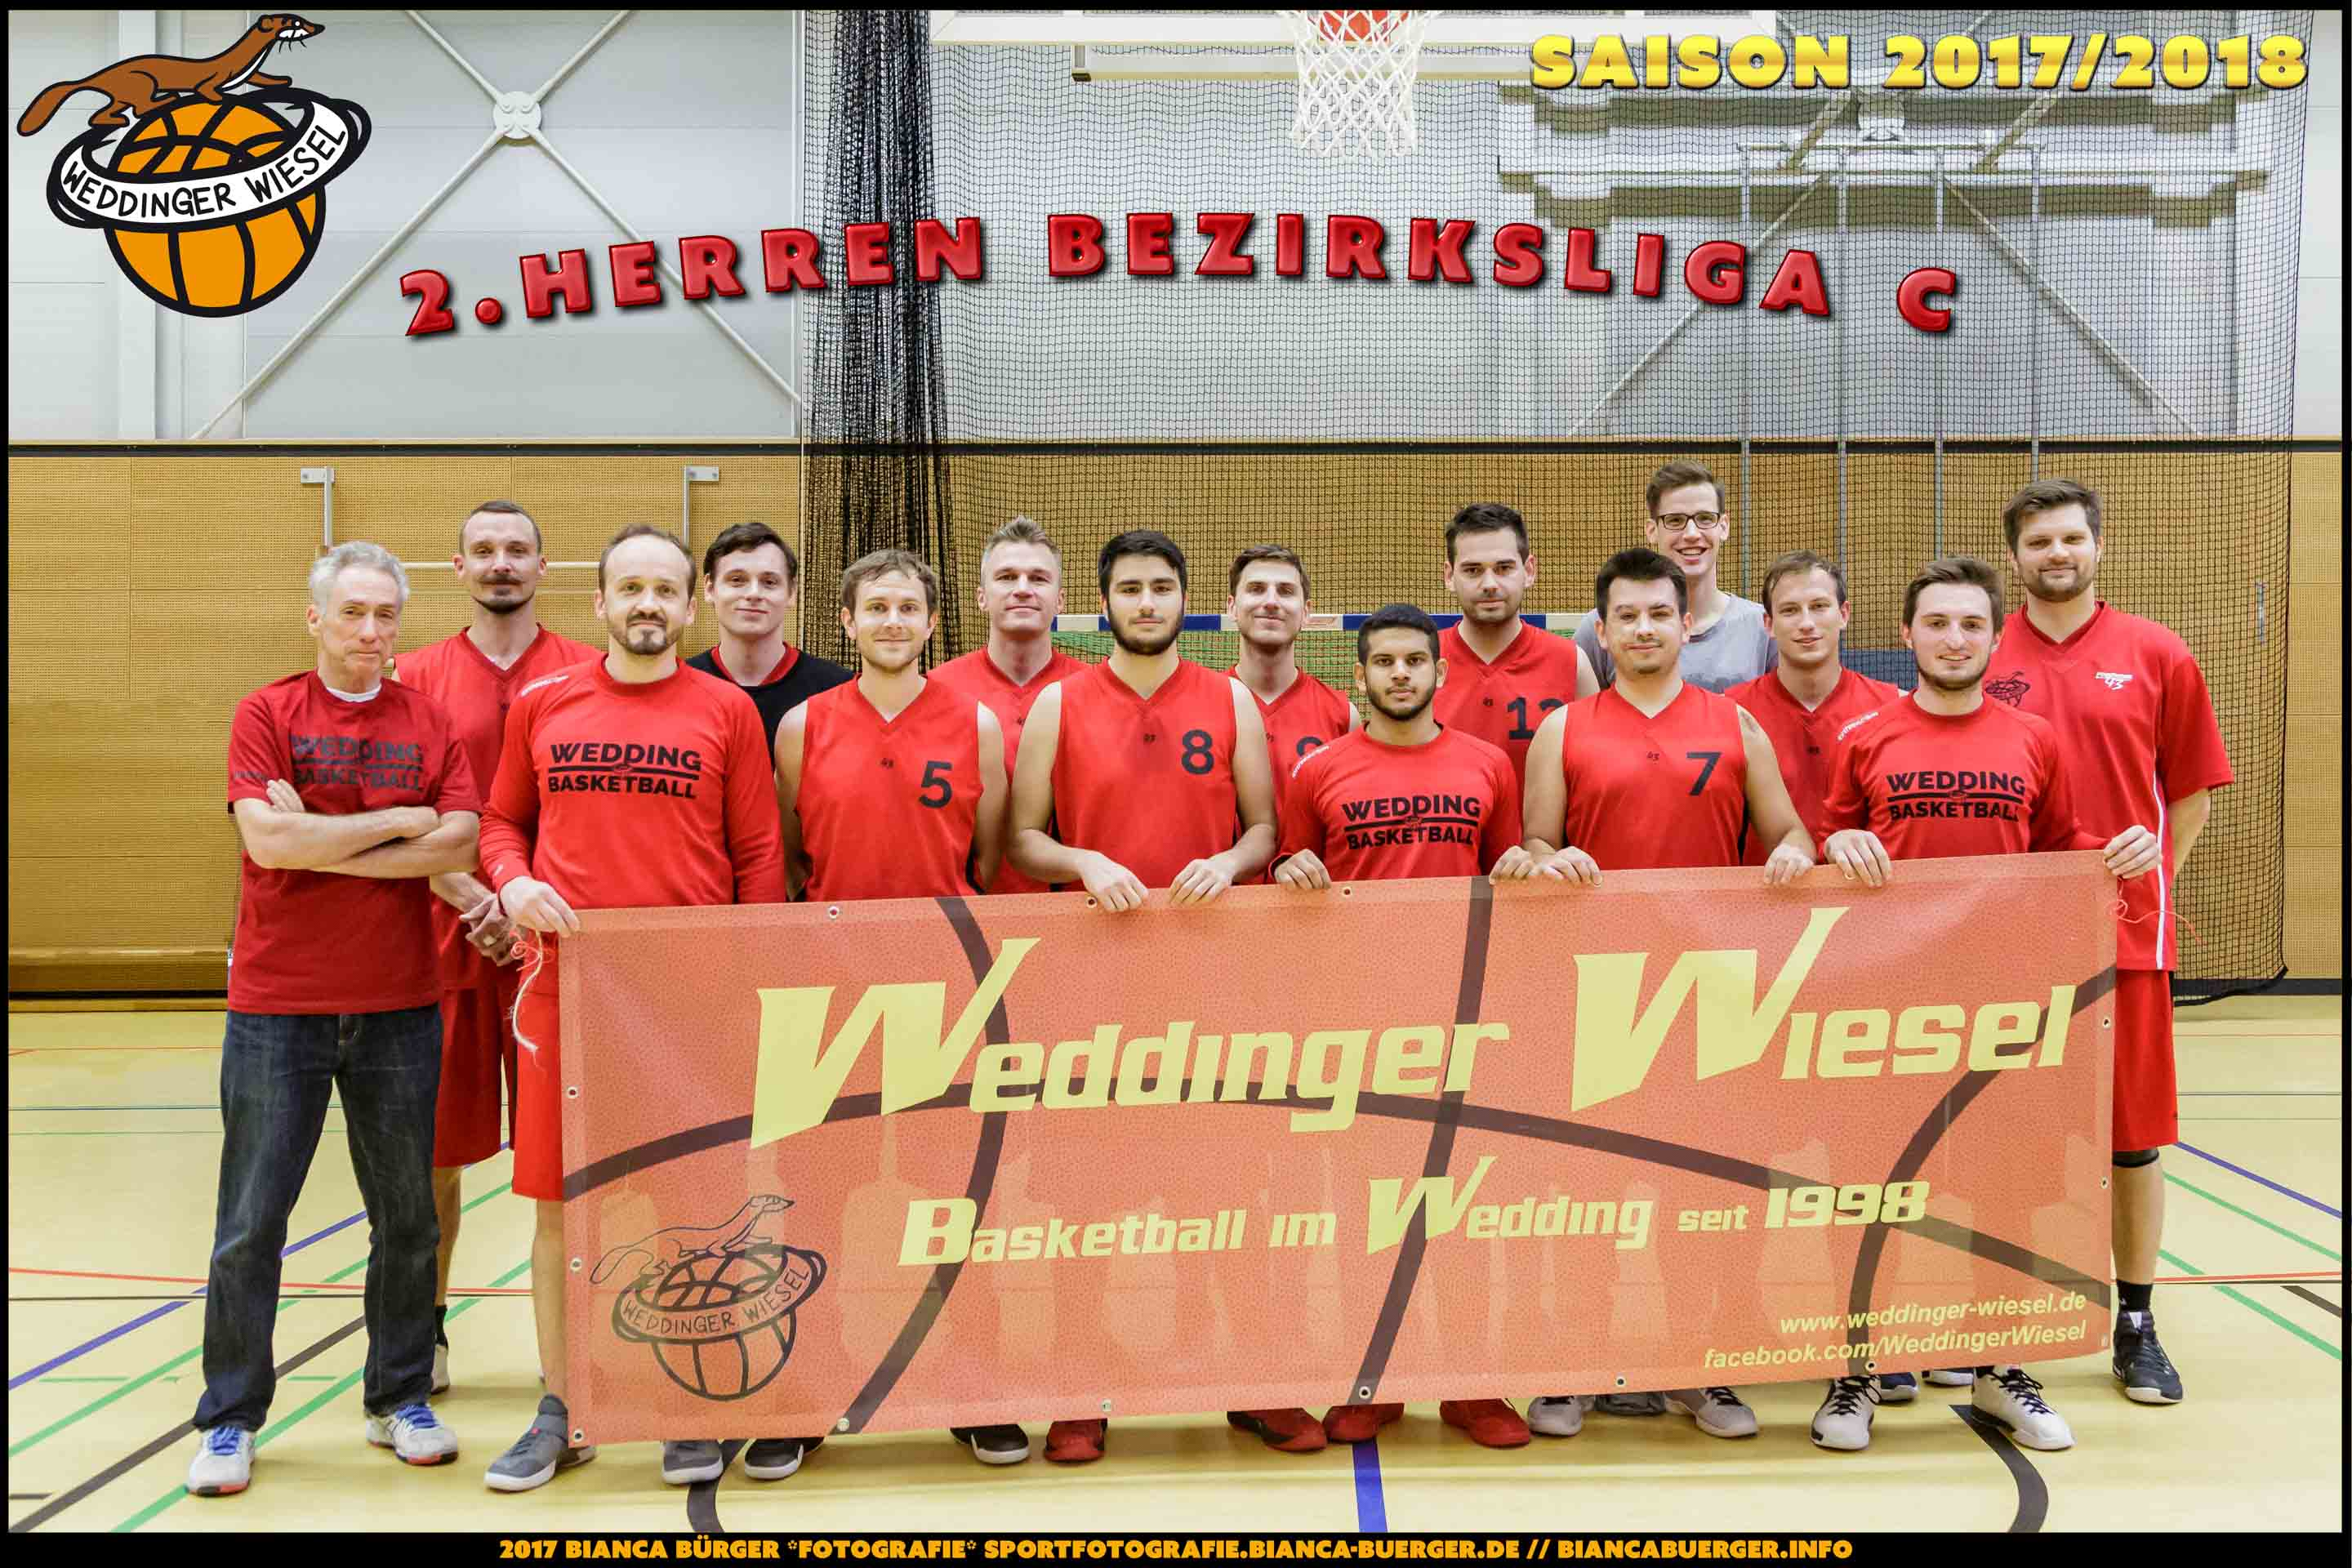 Team Herren-2 der Weddinger Wiesel - Saison 2017/2018